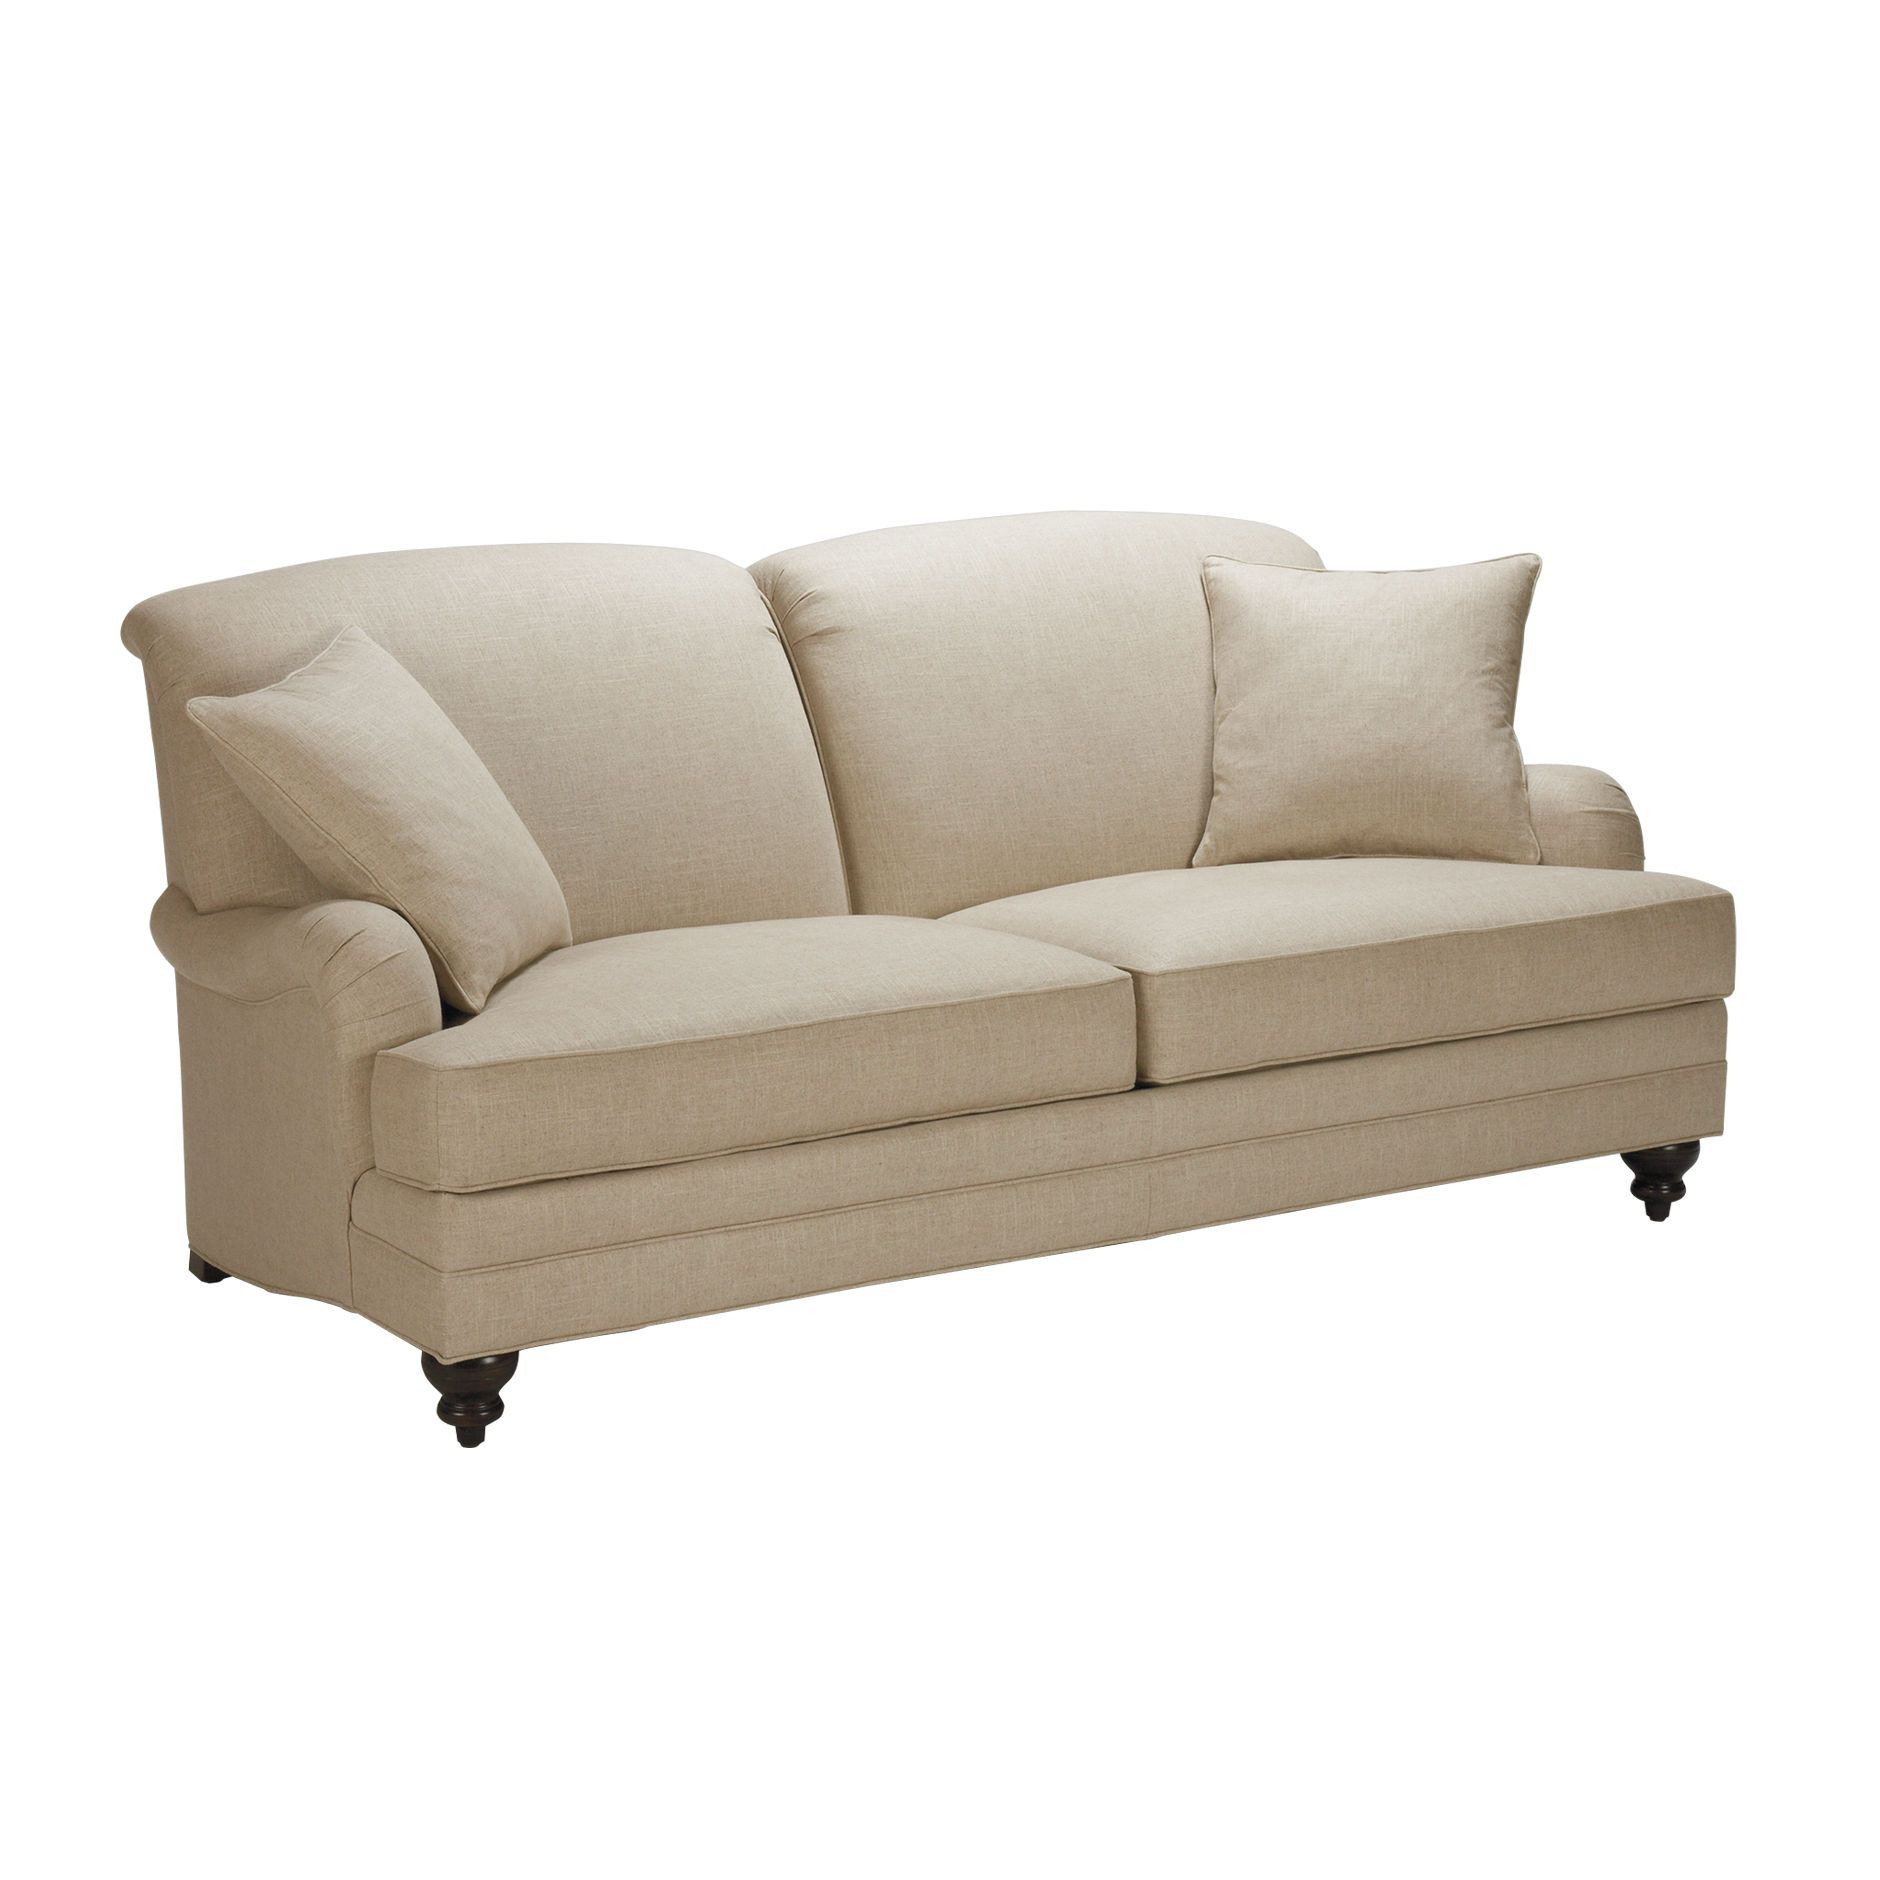 Madison Sofas Ethan Allen 79 Or 85 W X 35 H 39 D Back Spool Feet English Styling Seating Area 207774 Sofa 69 Wide 22 Deep